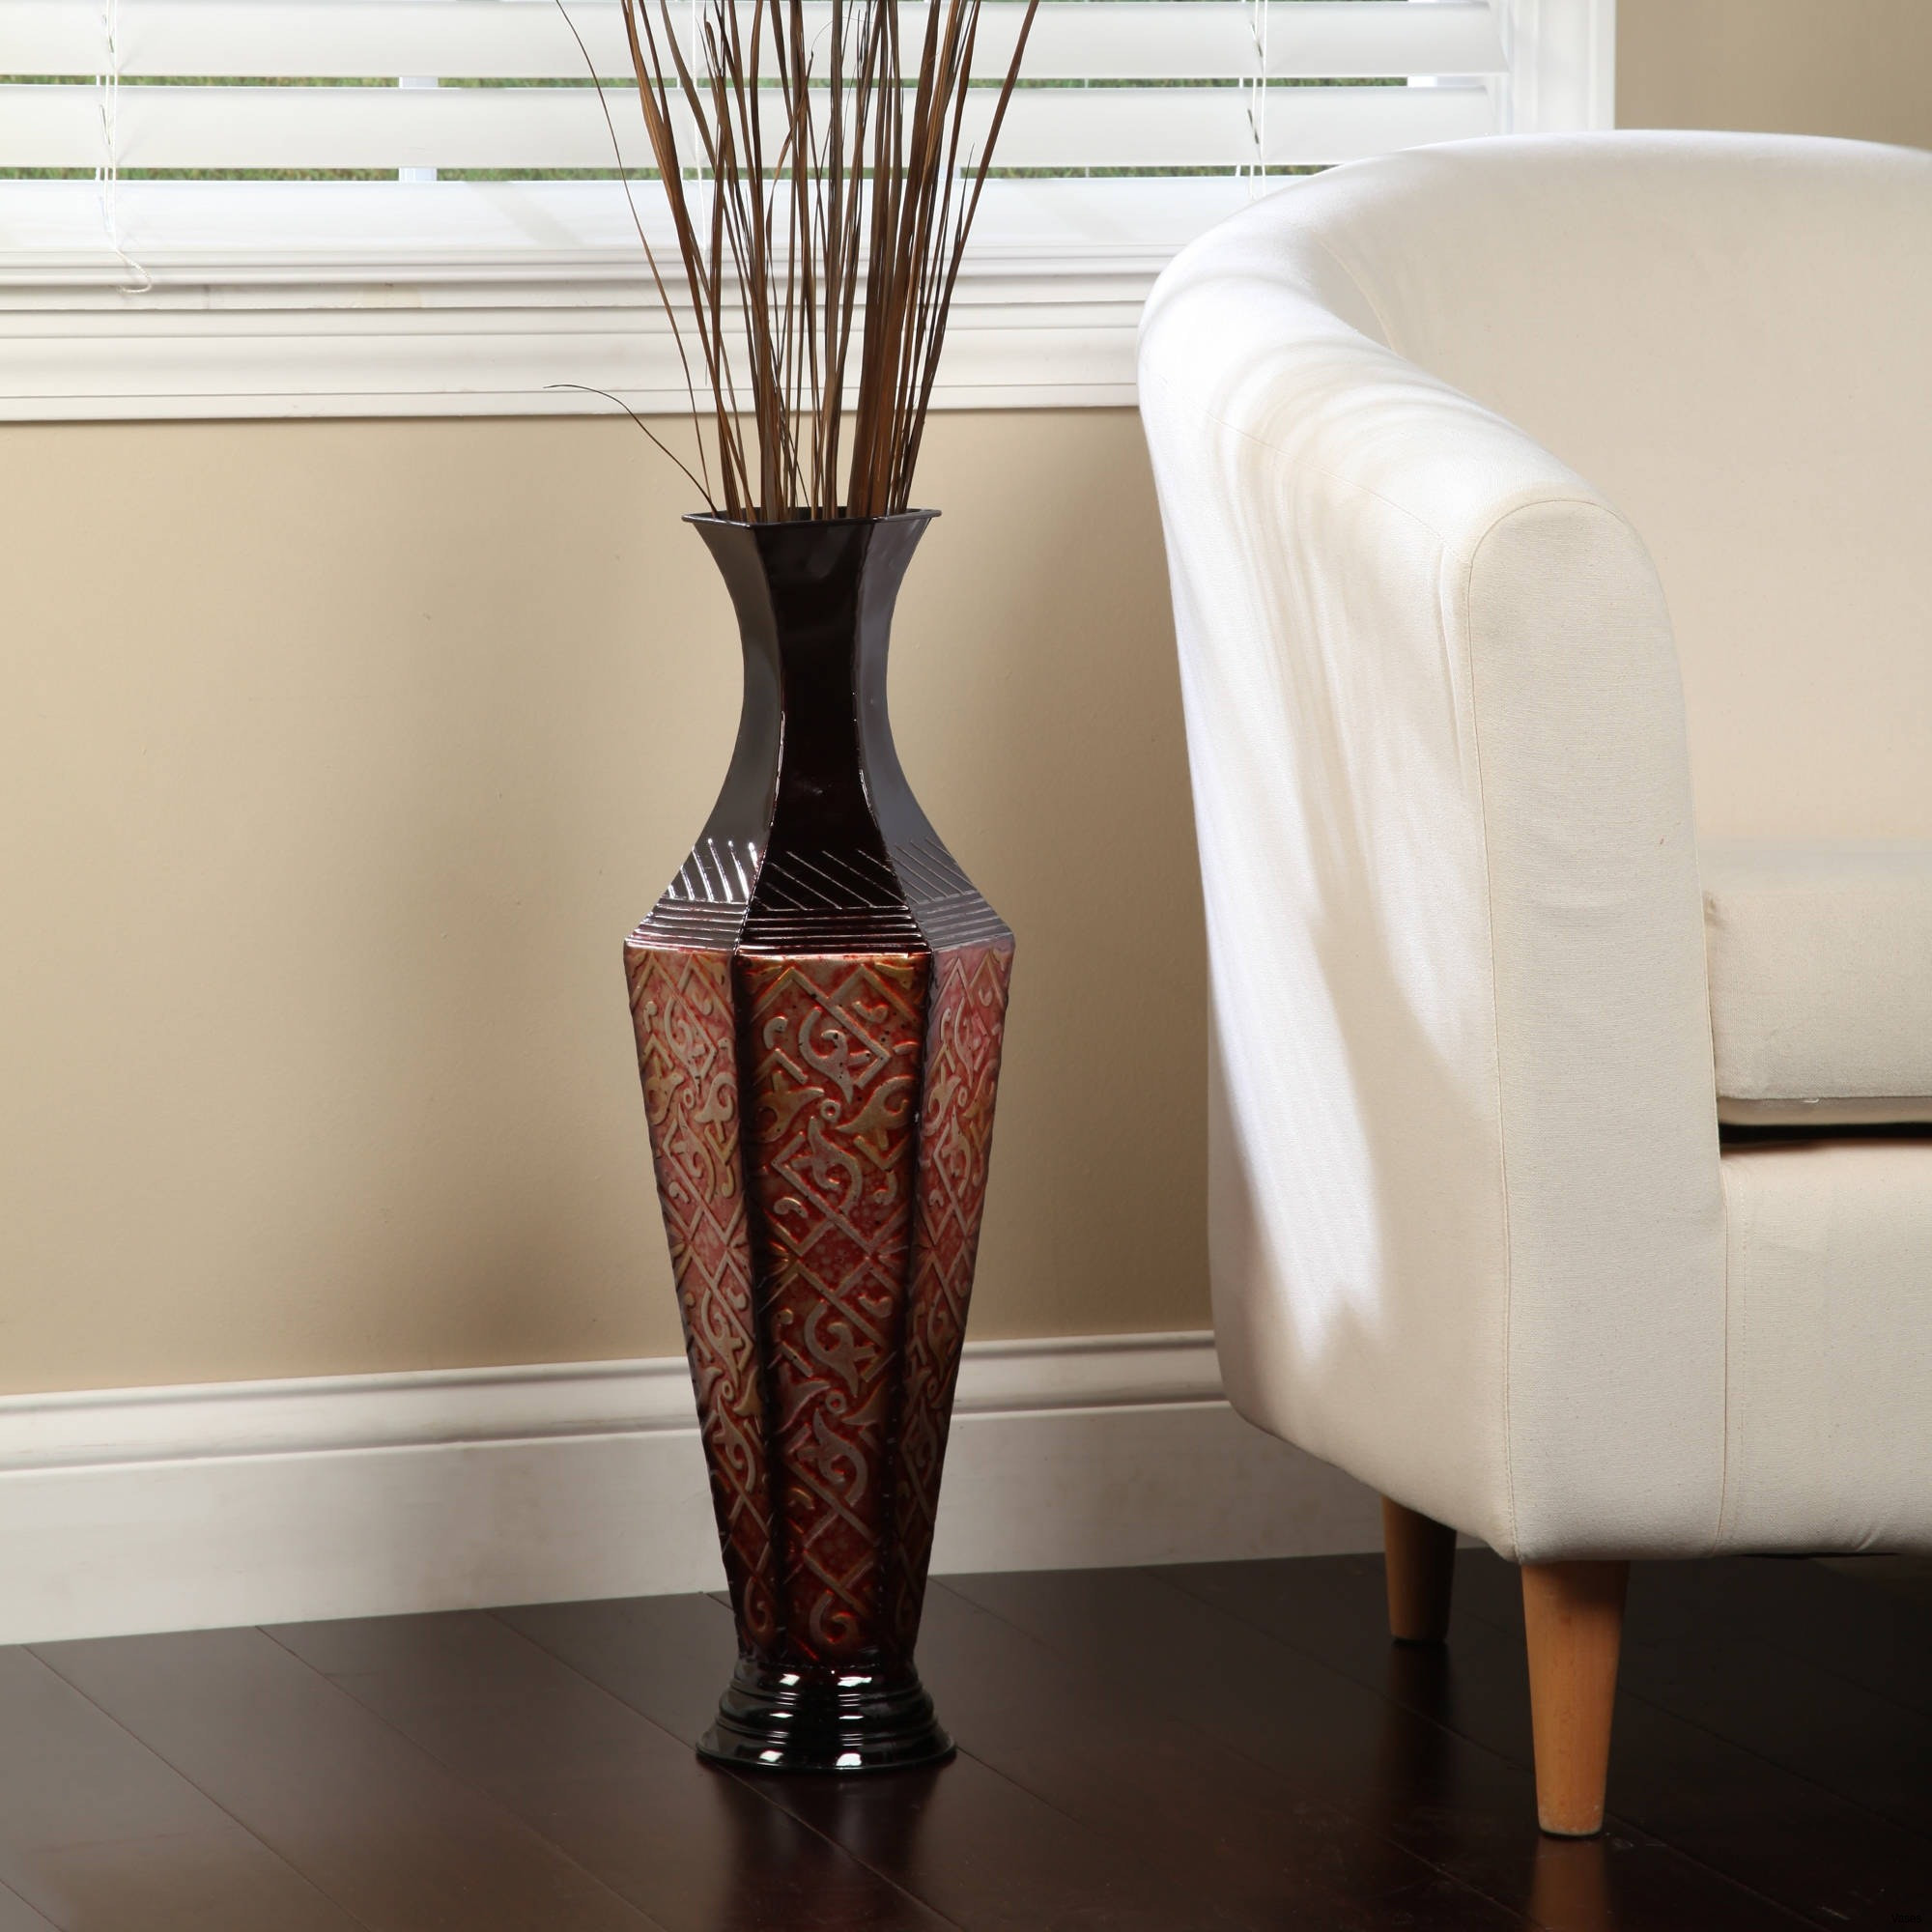 tall decorative vases of beautiful floor and decor home design in floor and decor beautiful 91fuecthjul sl1500 h vases tall floor home decor jpgi 0d cheap for